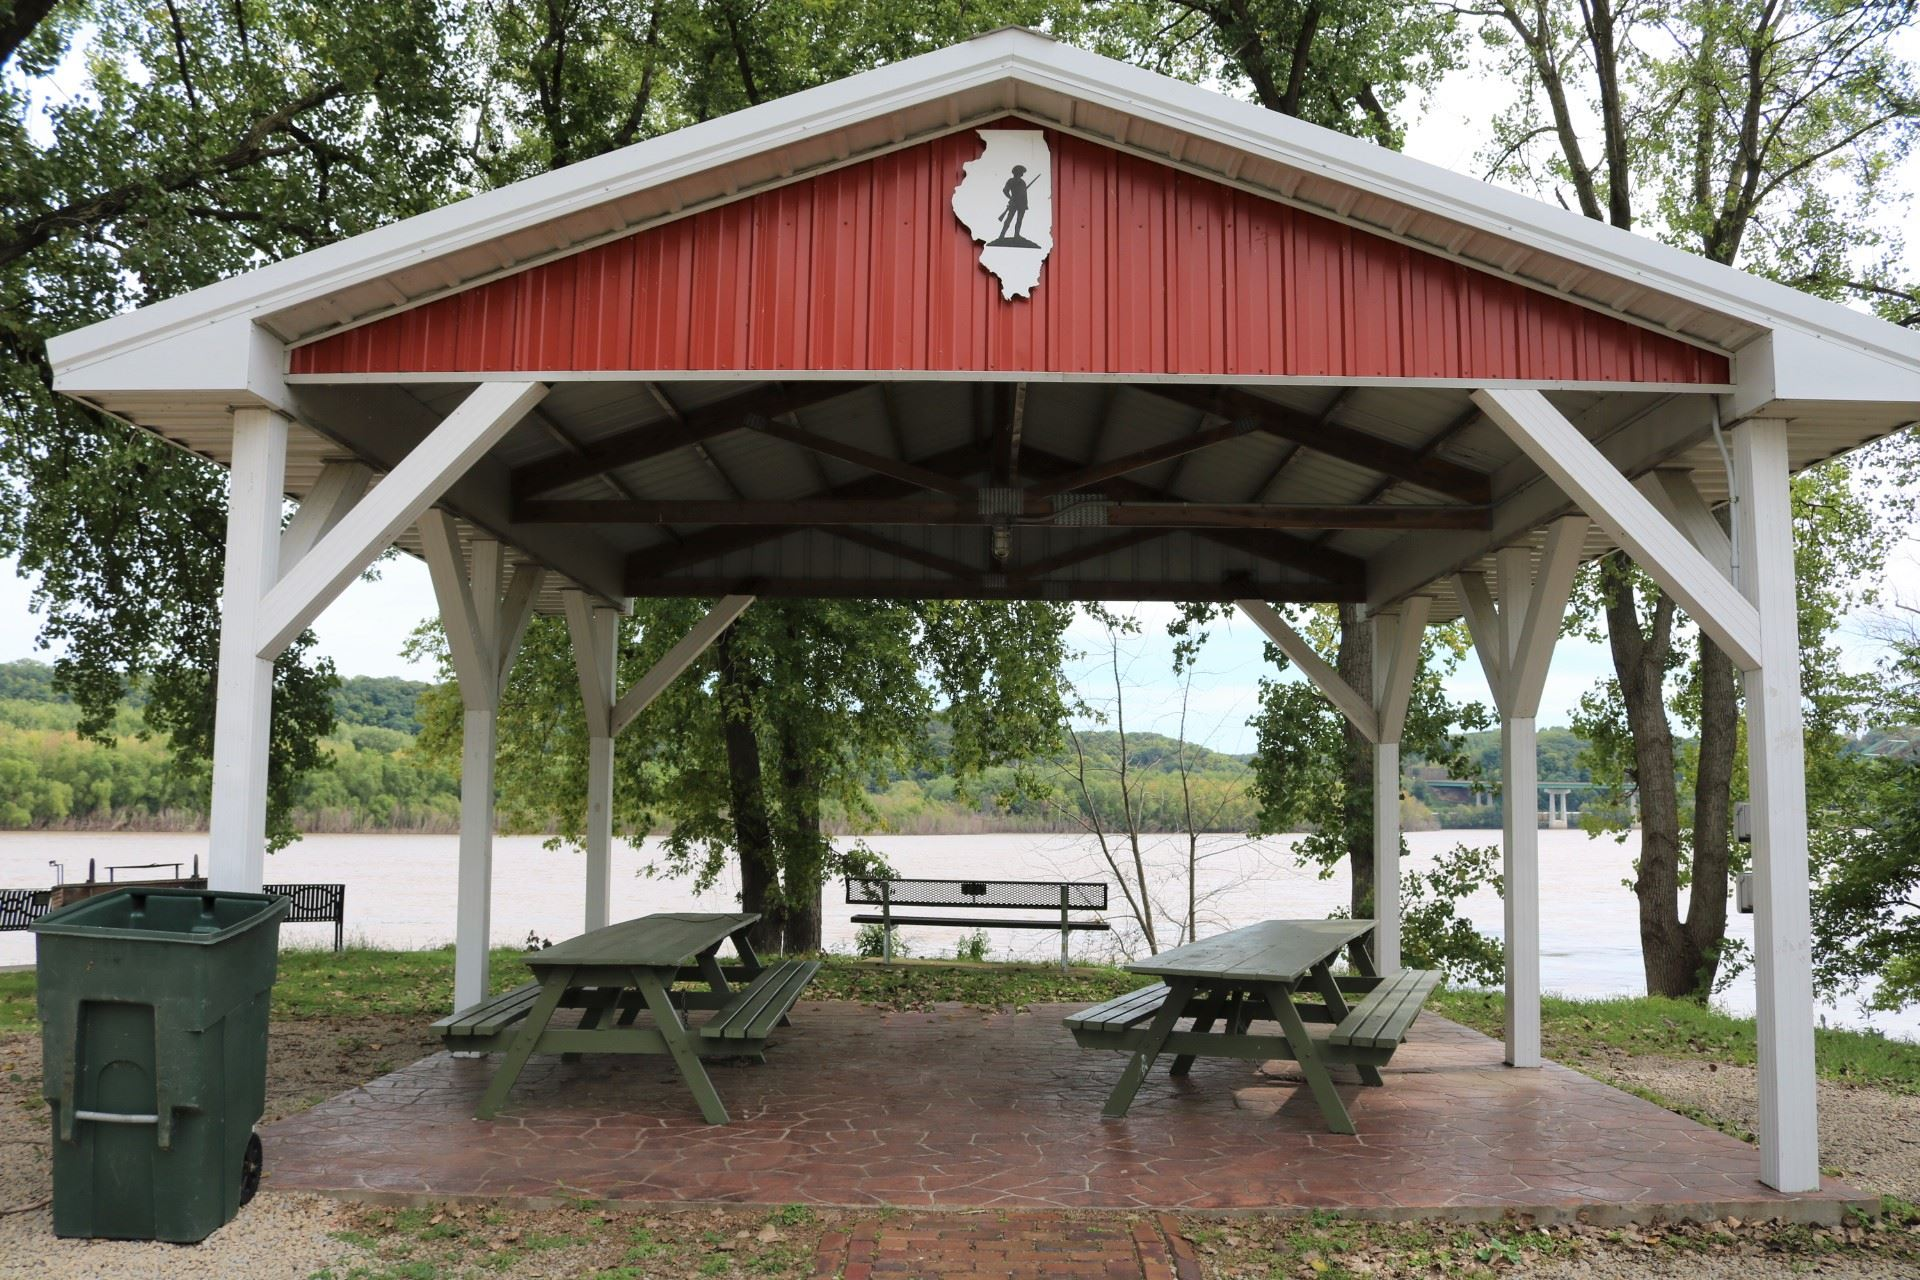 Illinois Pavilion seating: 24 people; price: $20.00. Handicapped accessible, 15 amp electricity, pic